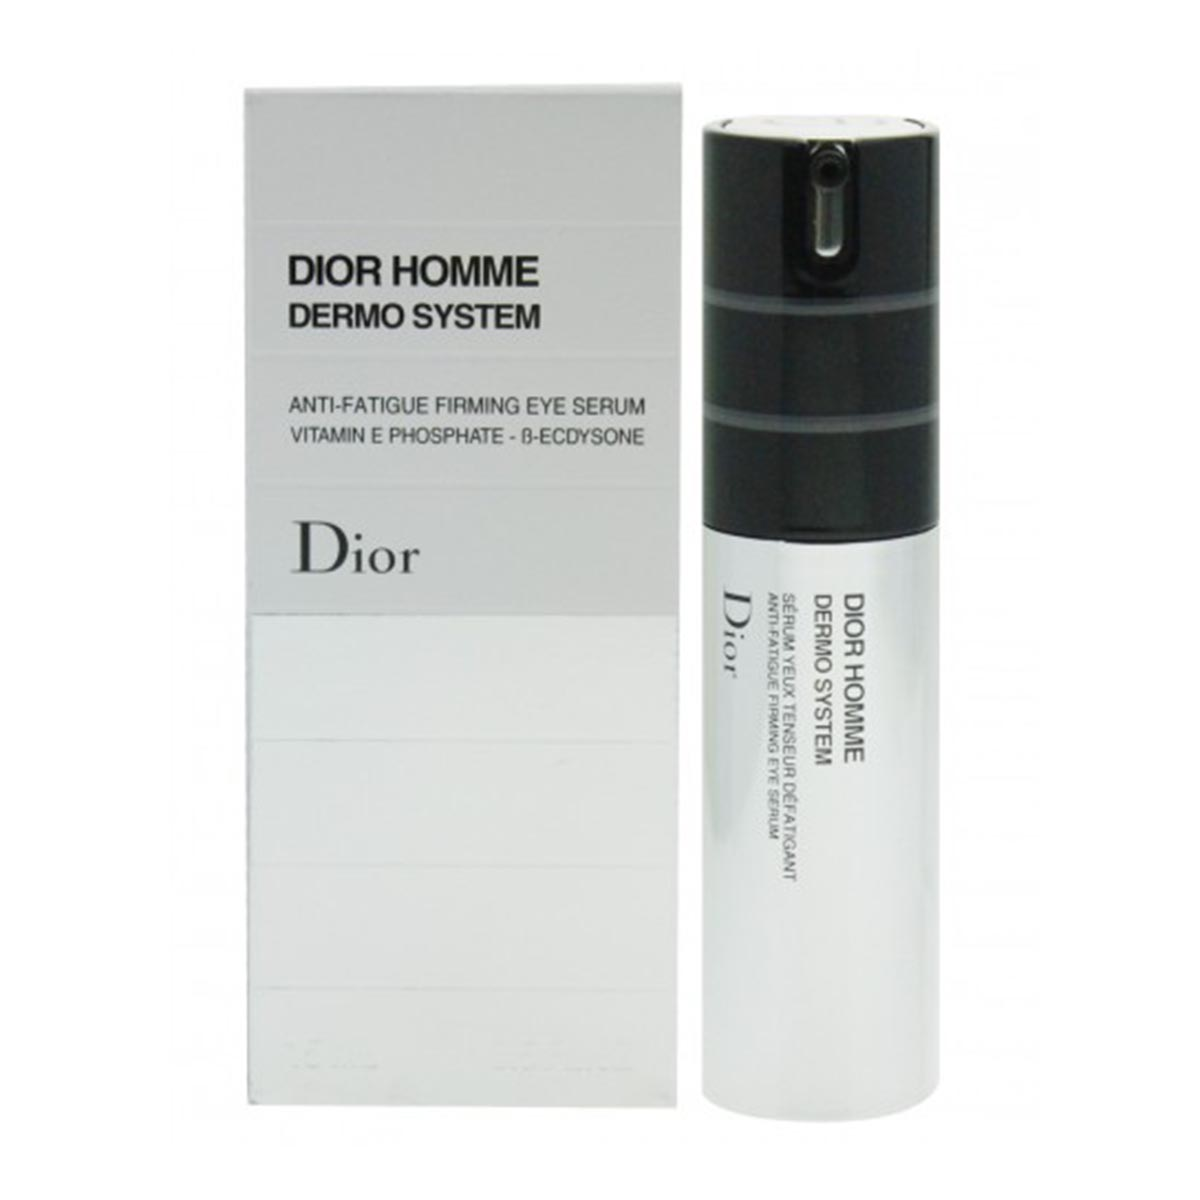 Dior homme anti fatigue firming eye serum 15ml